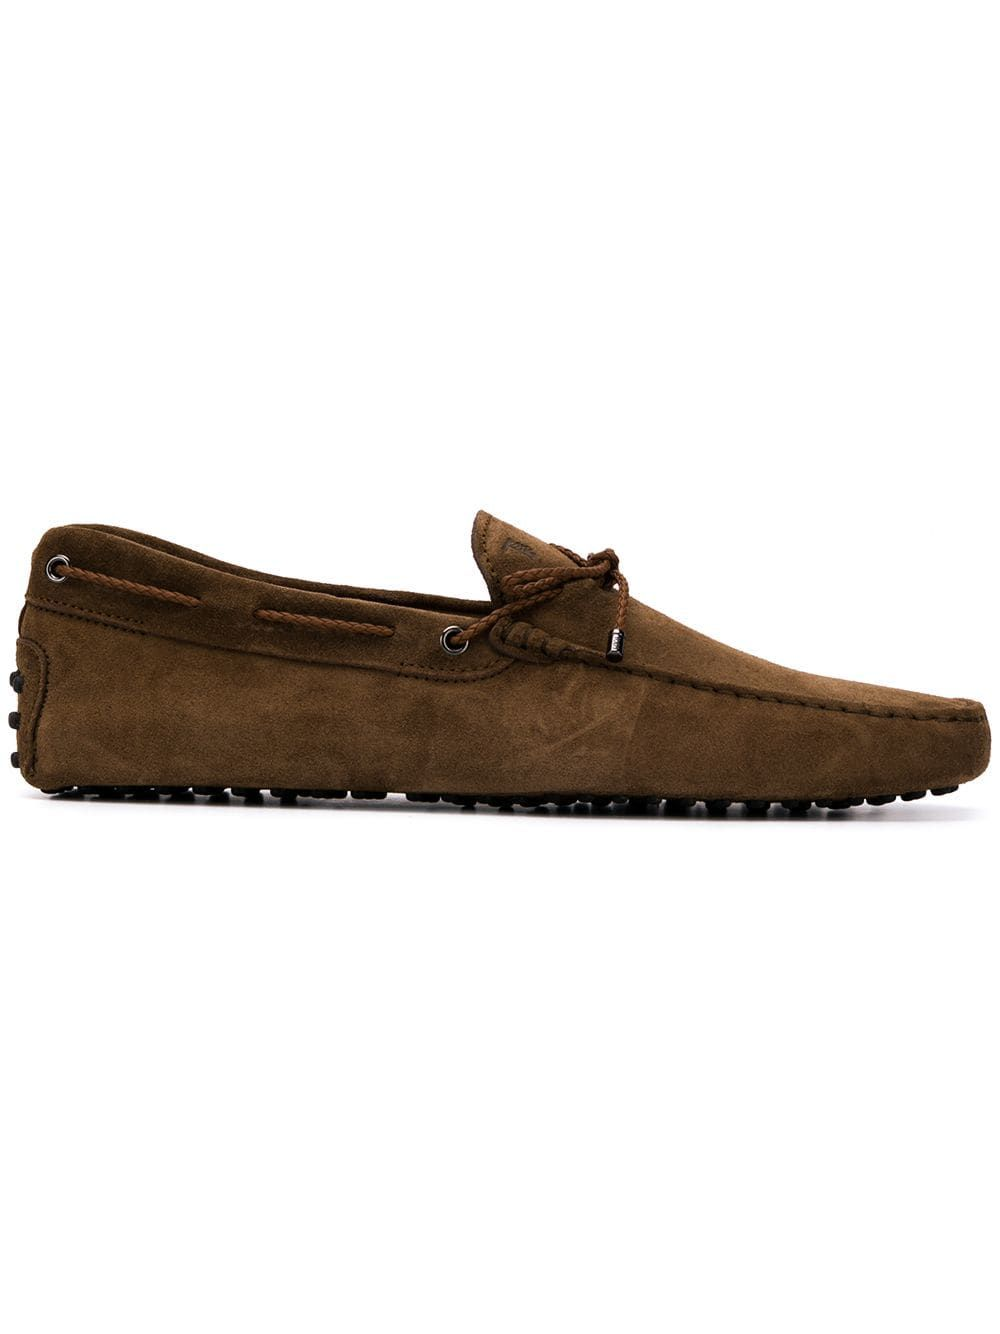 5f0d852300 TOD'S TOD'S GOMMINO DRIVING SHOES - BROWN. #tods #shoes   Tod'S in ...